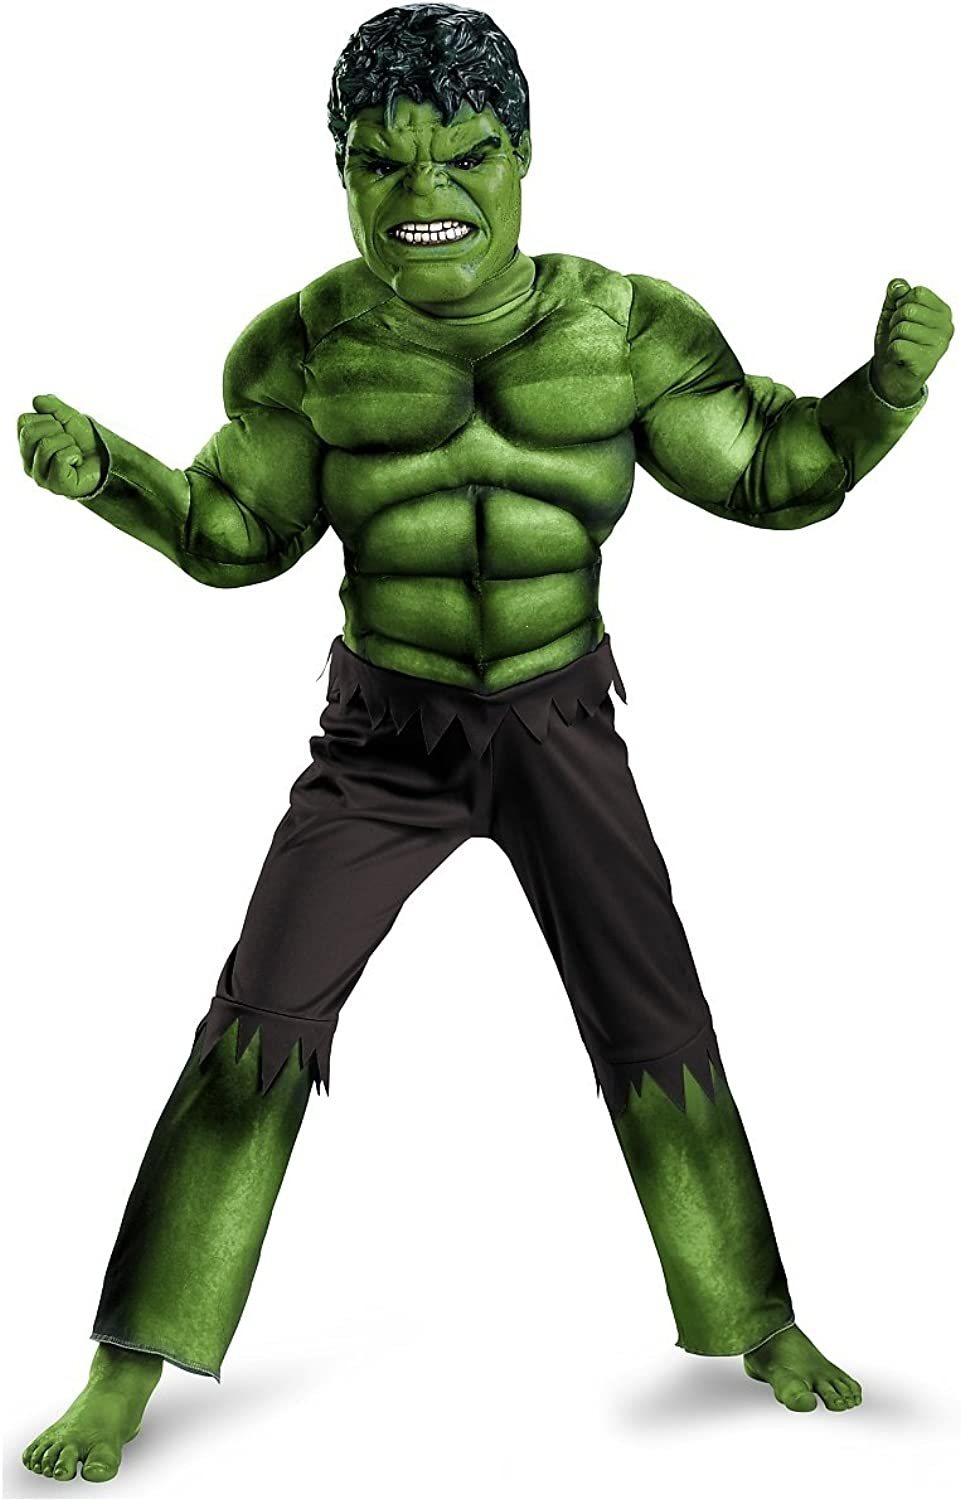 Disguise Avengers Hulk Classic Muscle Costume Green Brown